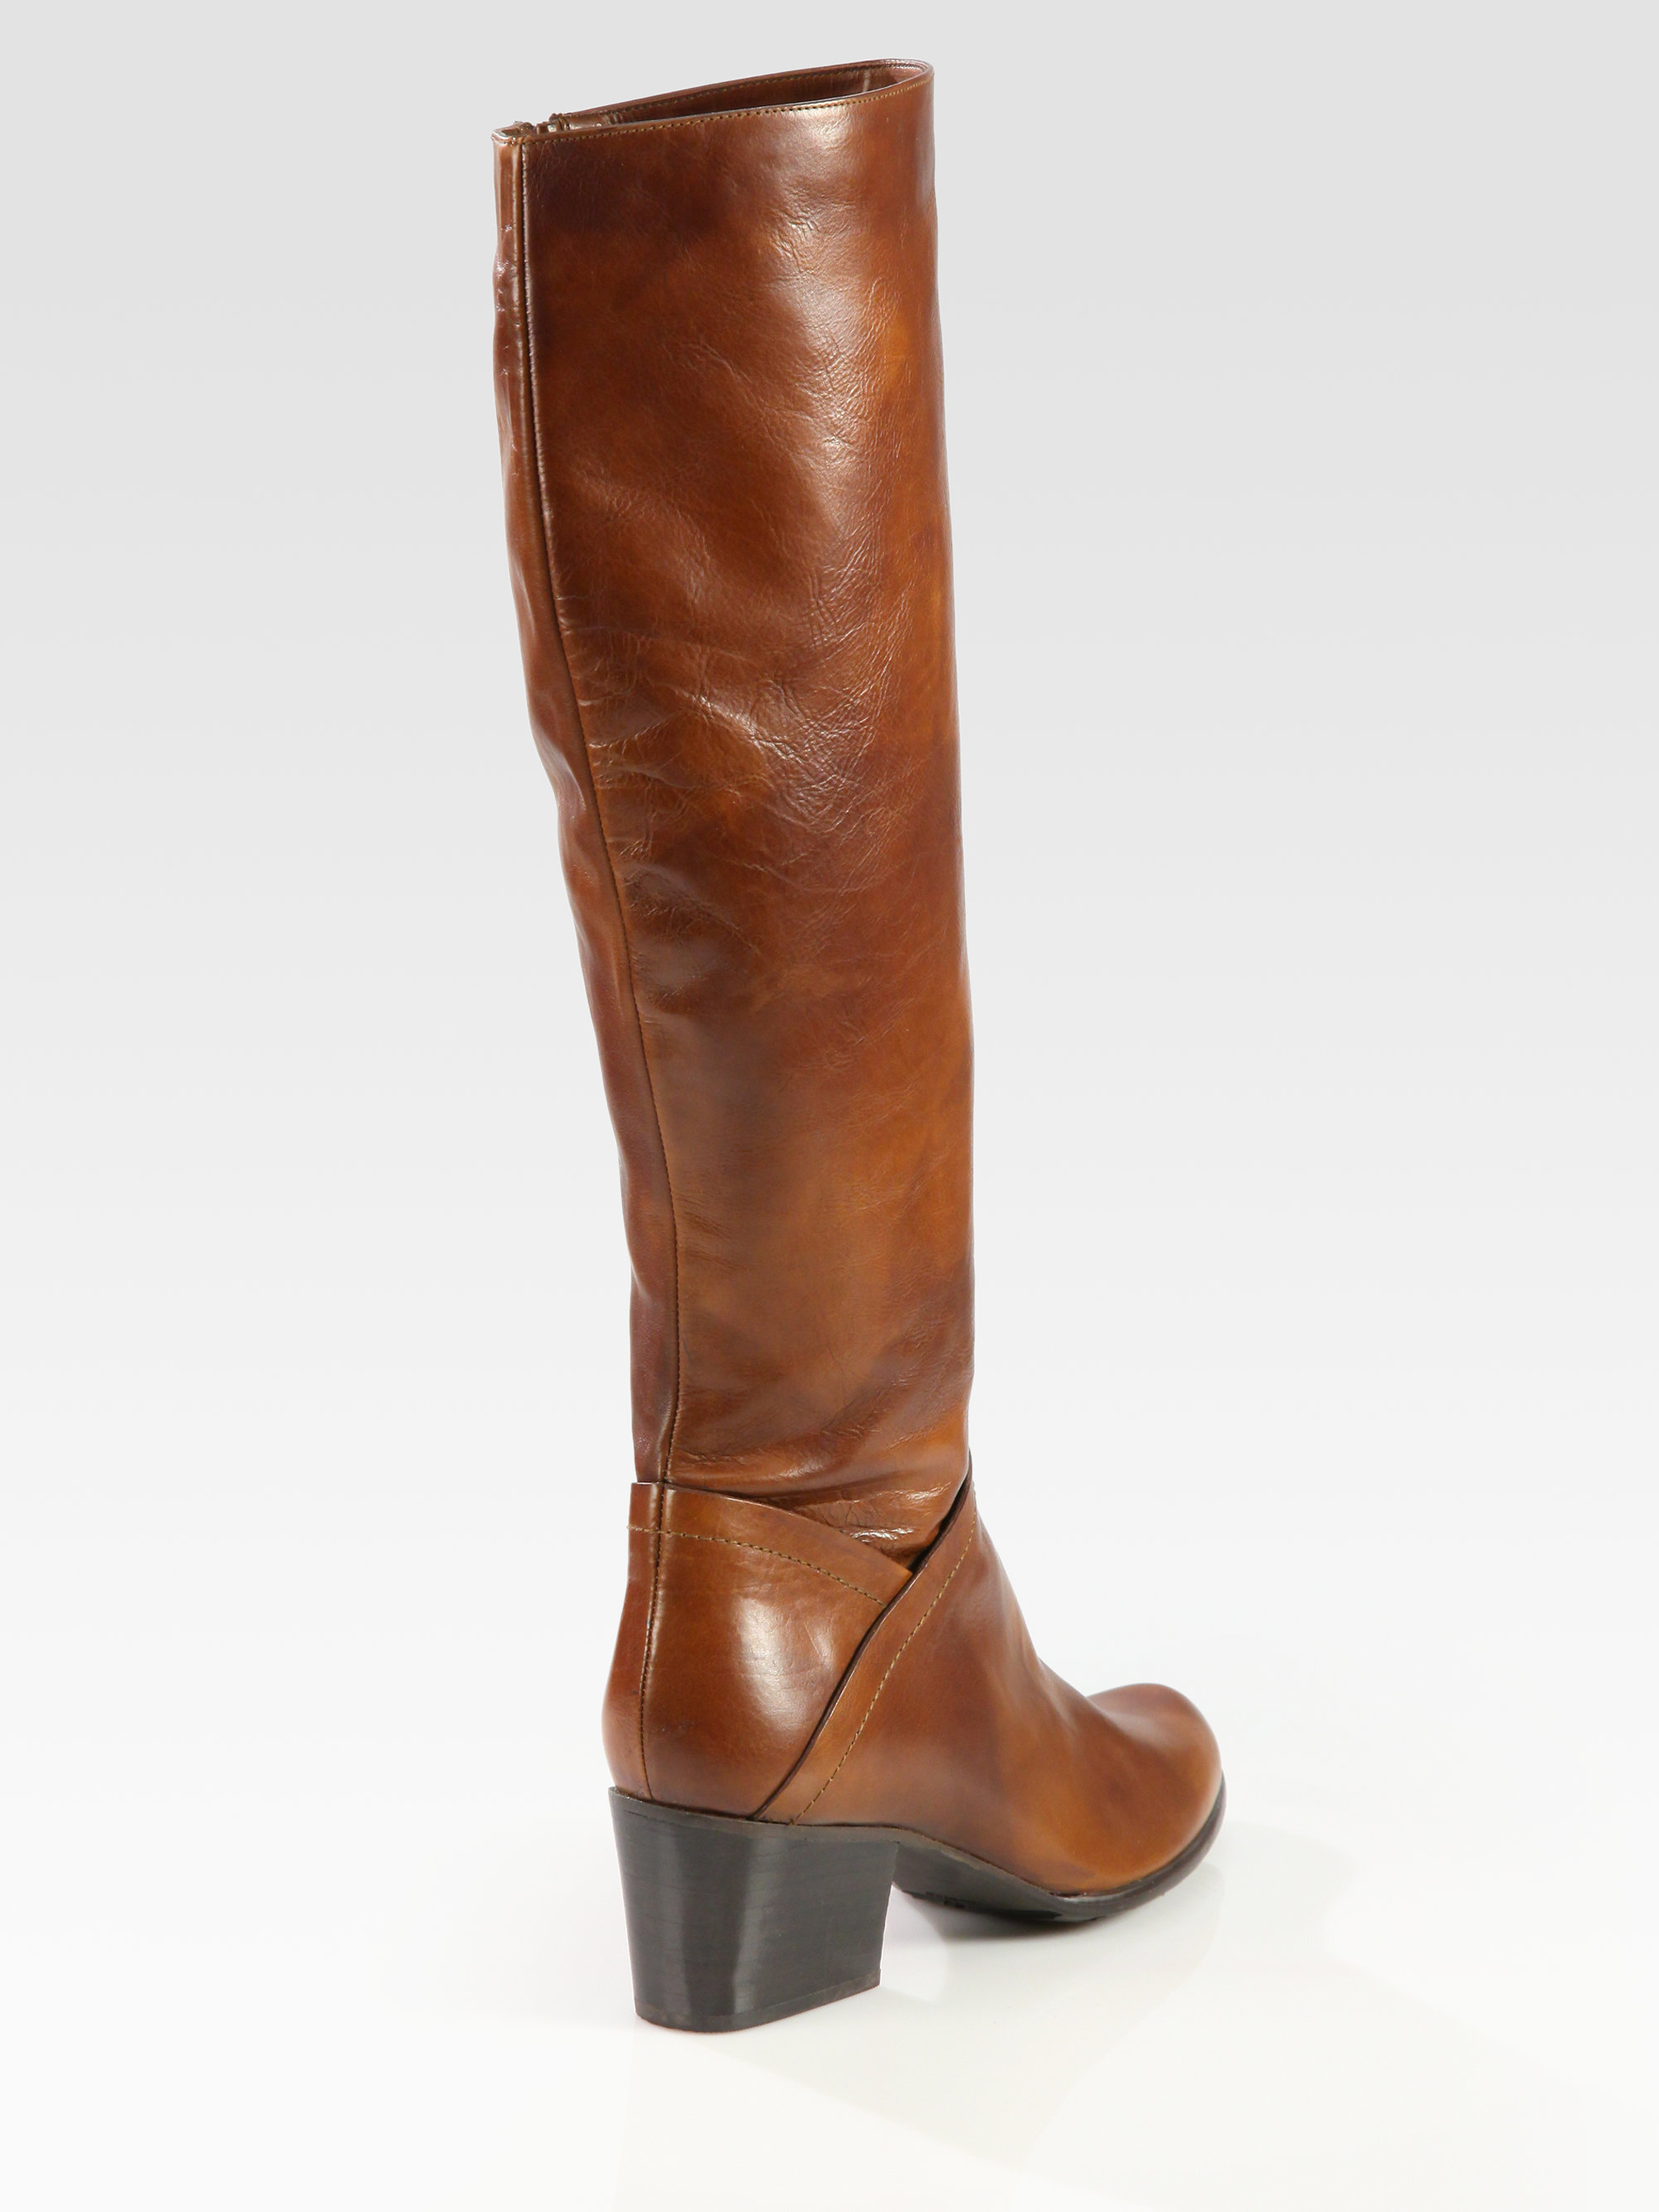 clearance affordable cheap explore Stuart Weitzman Standard Knee-High Boots buy cheap authentic good selling sale online countdown package cheap online PuvmsvkR6E